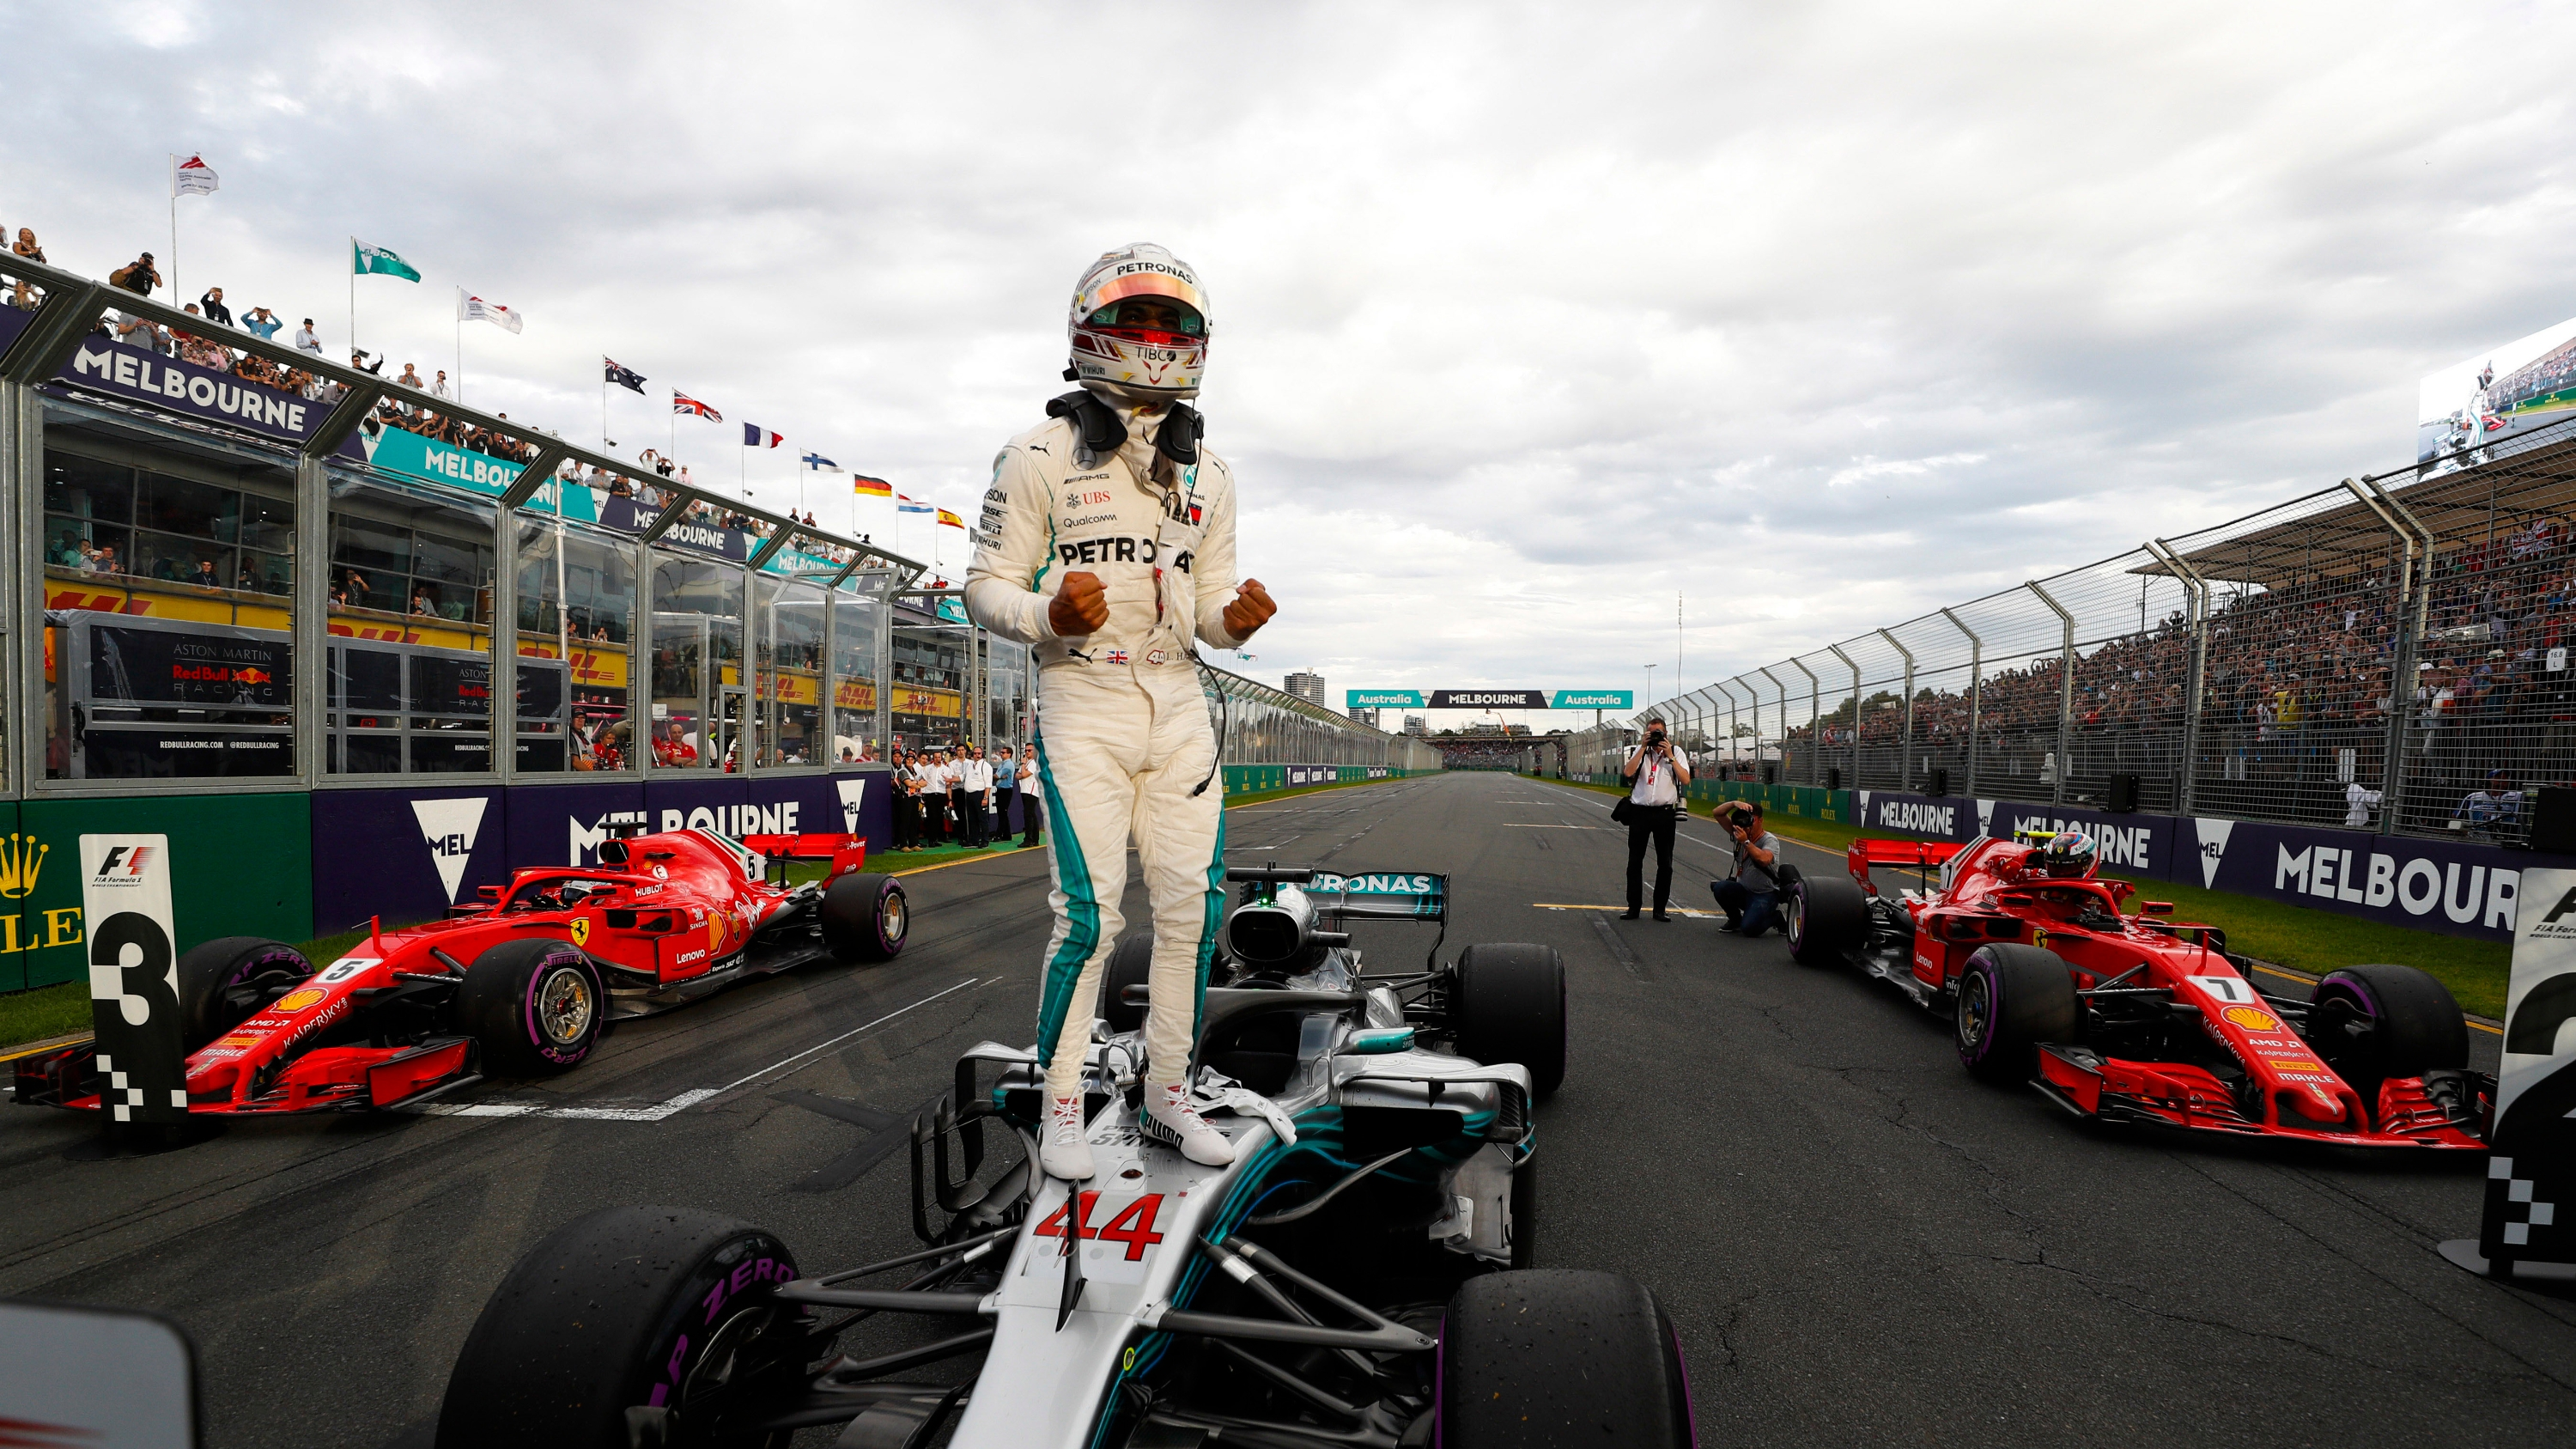 Hamilton grabs pole, Ricciardo fifth in French Grand Prix